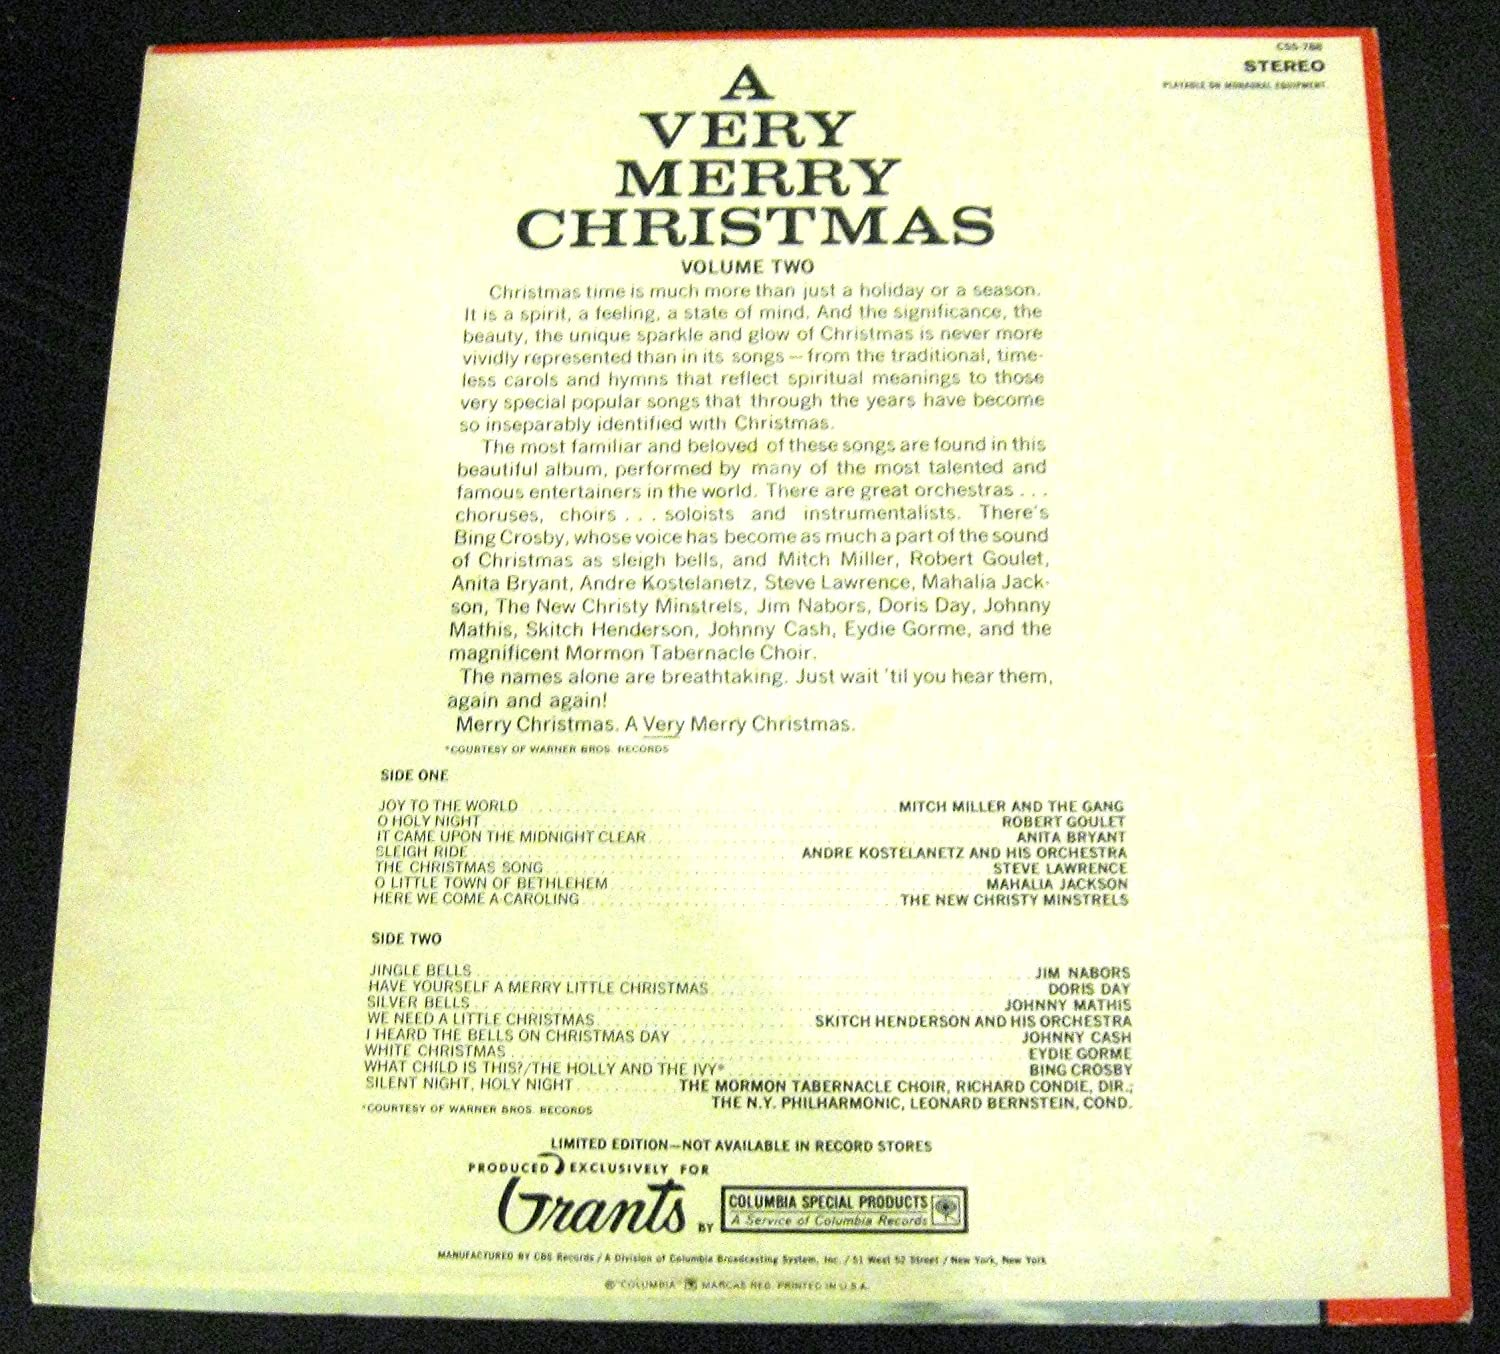 Various - A Very Merry Christmas by W. T. Grants - Volume 2 - Amazon ...